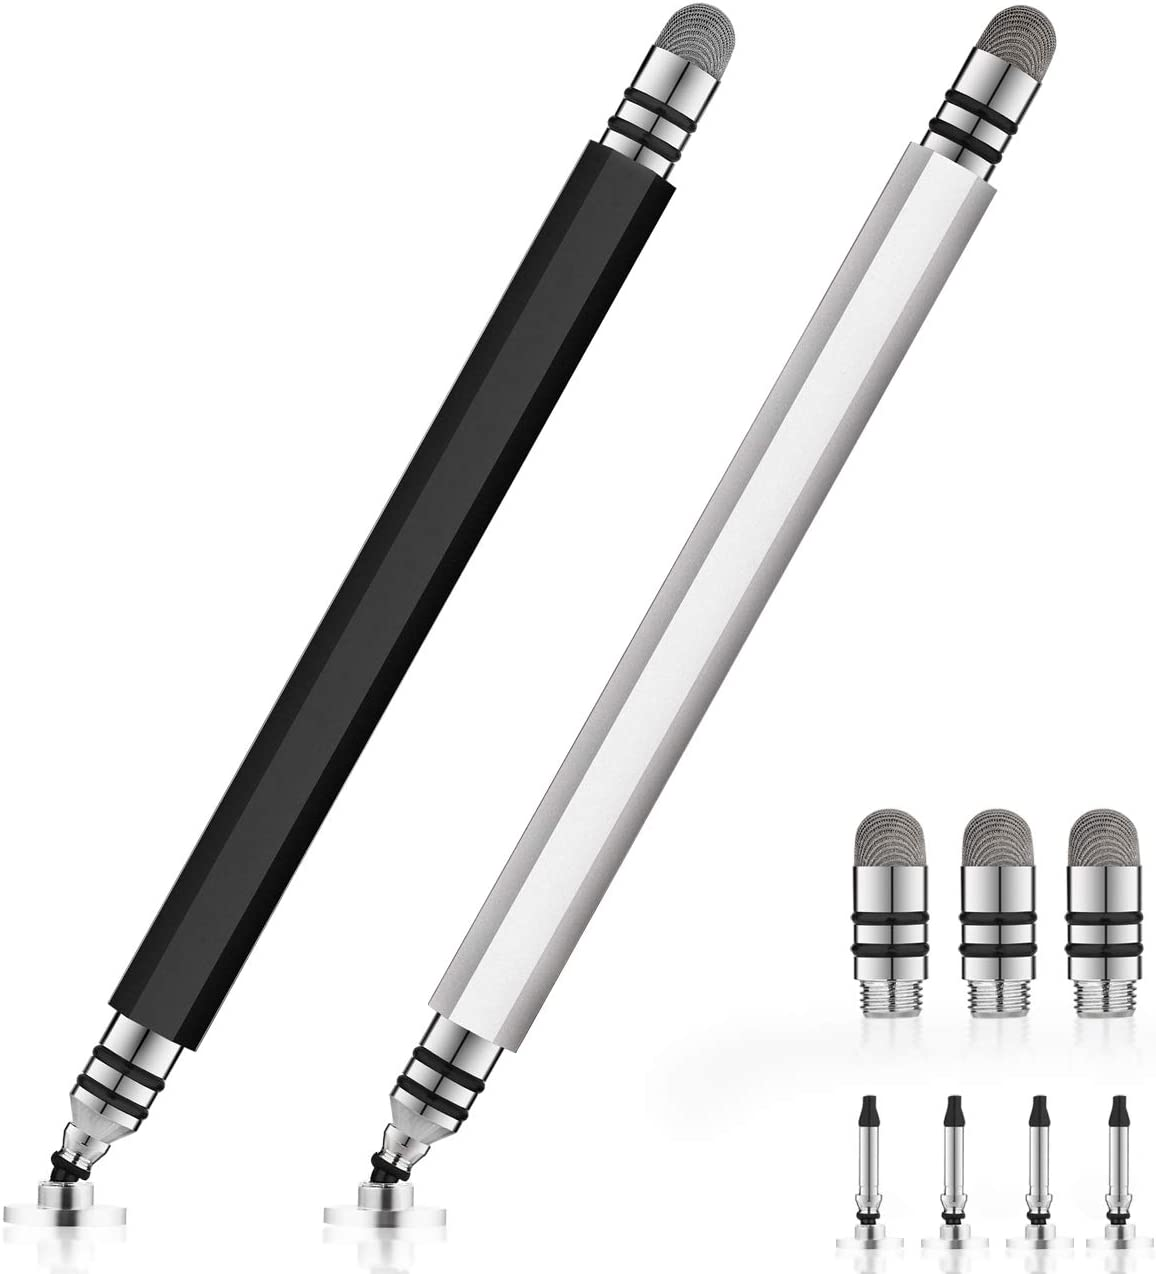 UROPHYLLA Stylus Pens, Disc Stylus Touch Screen Pen, Capacitive Stylus Pens for iPad, iPhone, Tablet, Laptops and Other Touch Screens with 4 Discs and 3 Fiber Tips (Black/Silver)